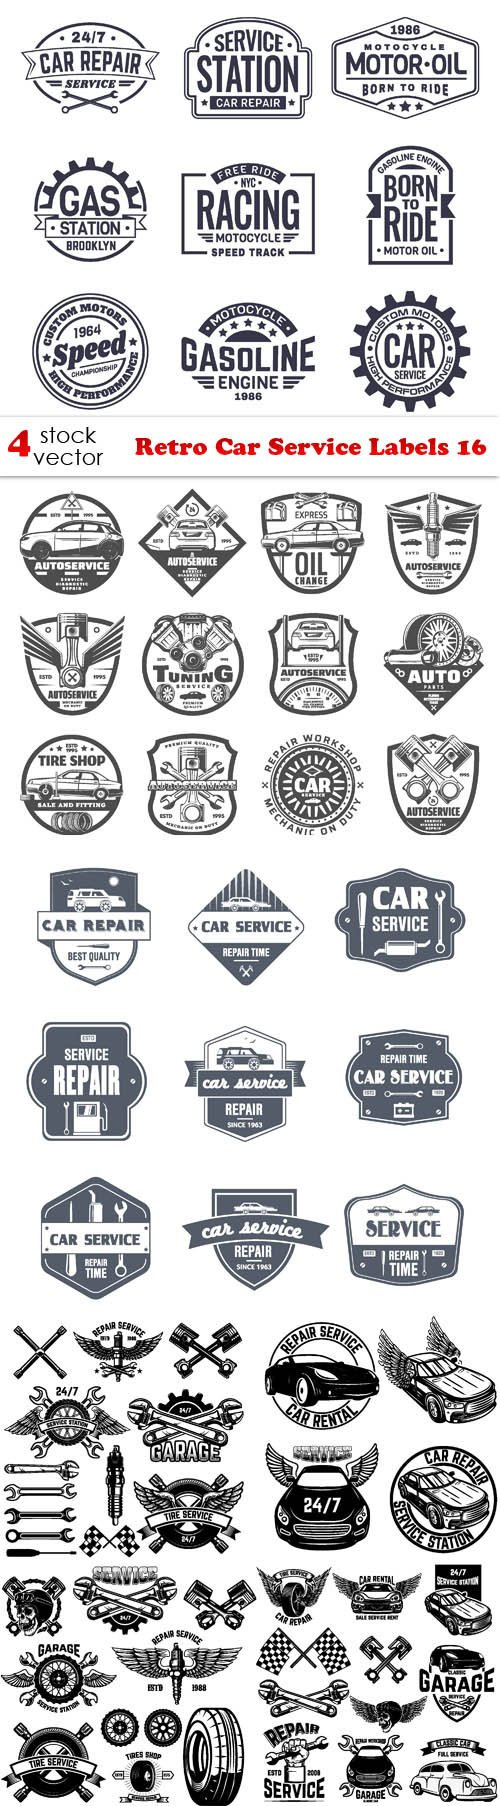 Vectors - Retro Car Service Labels 16